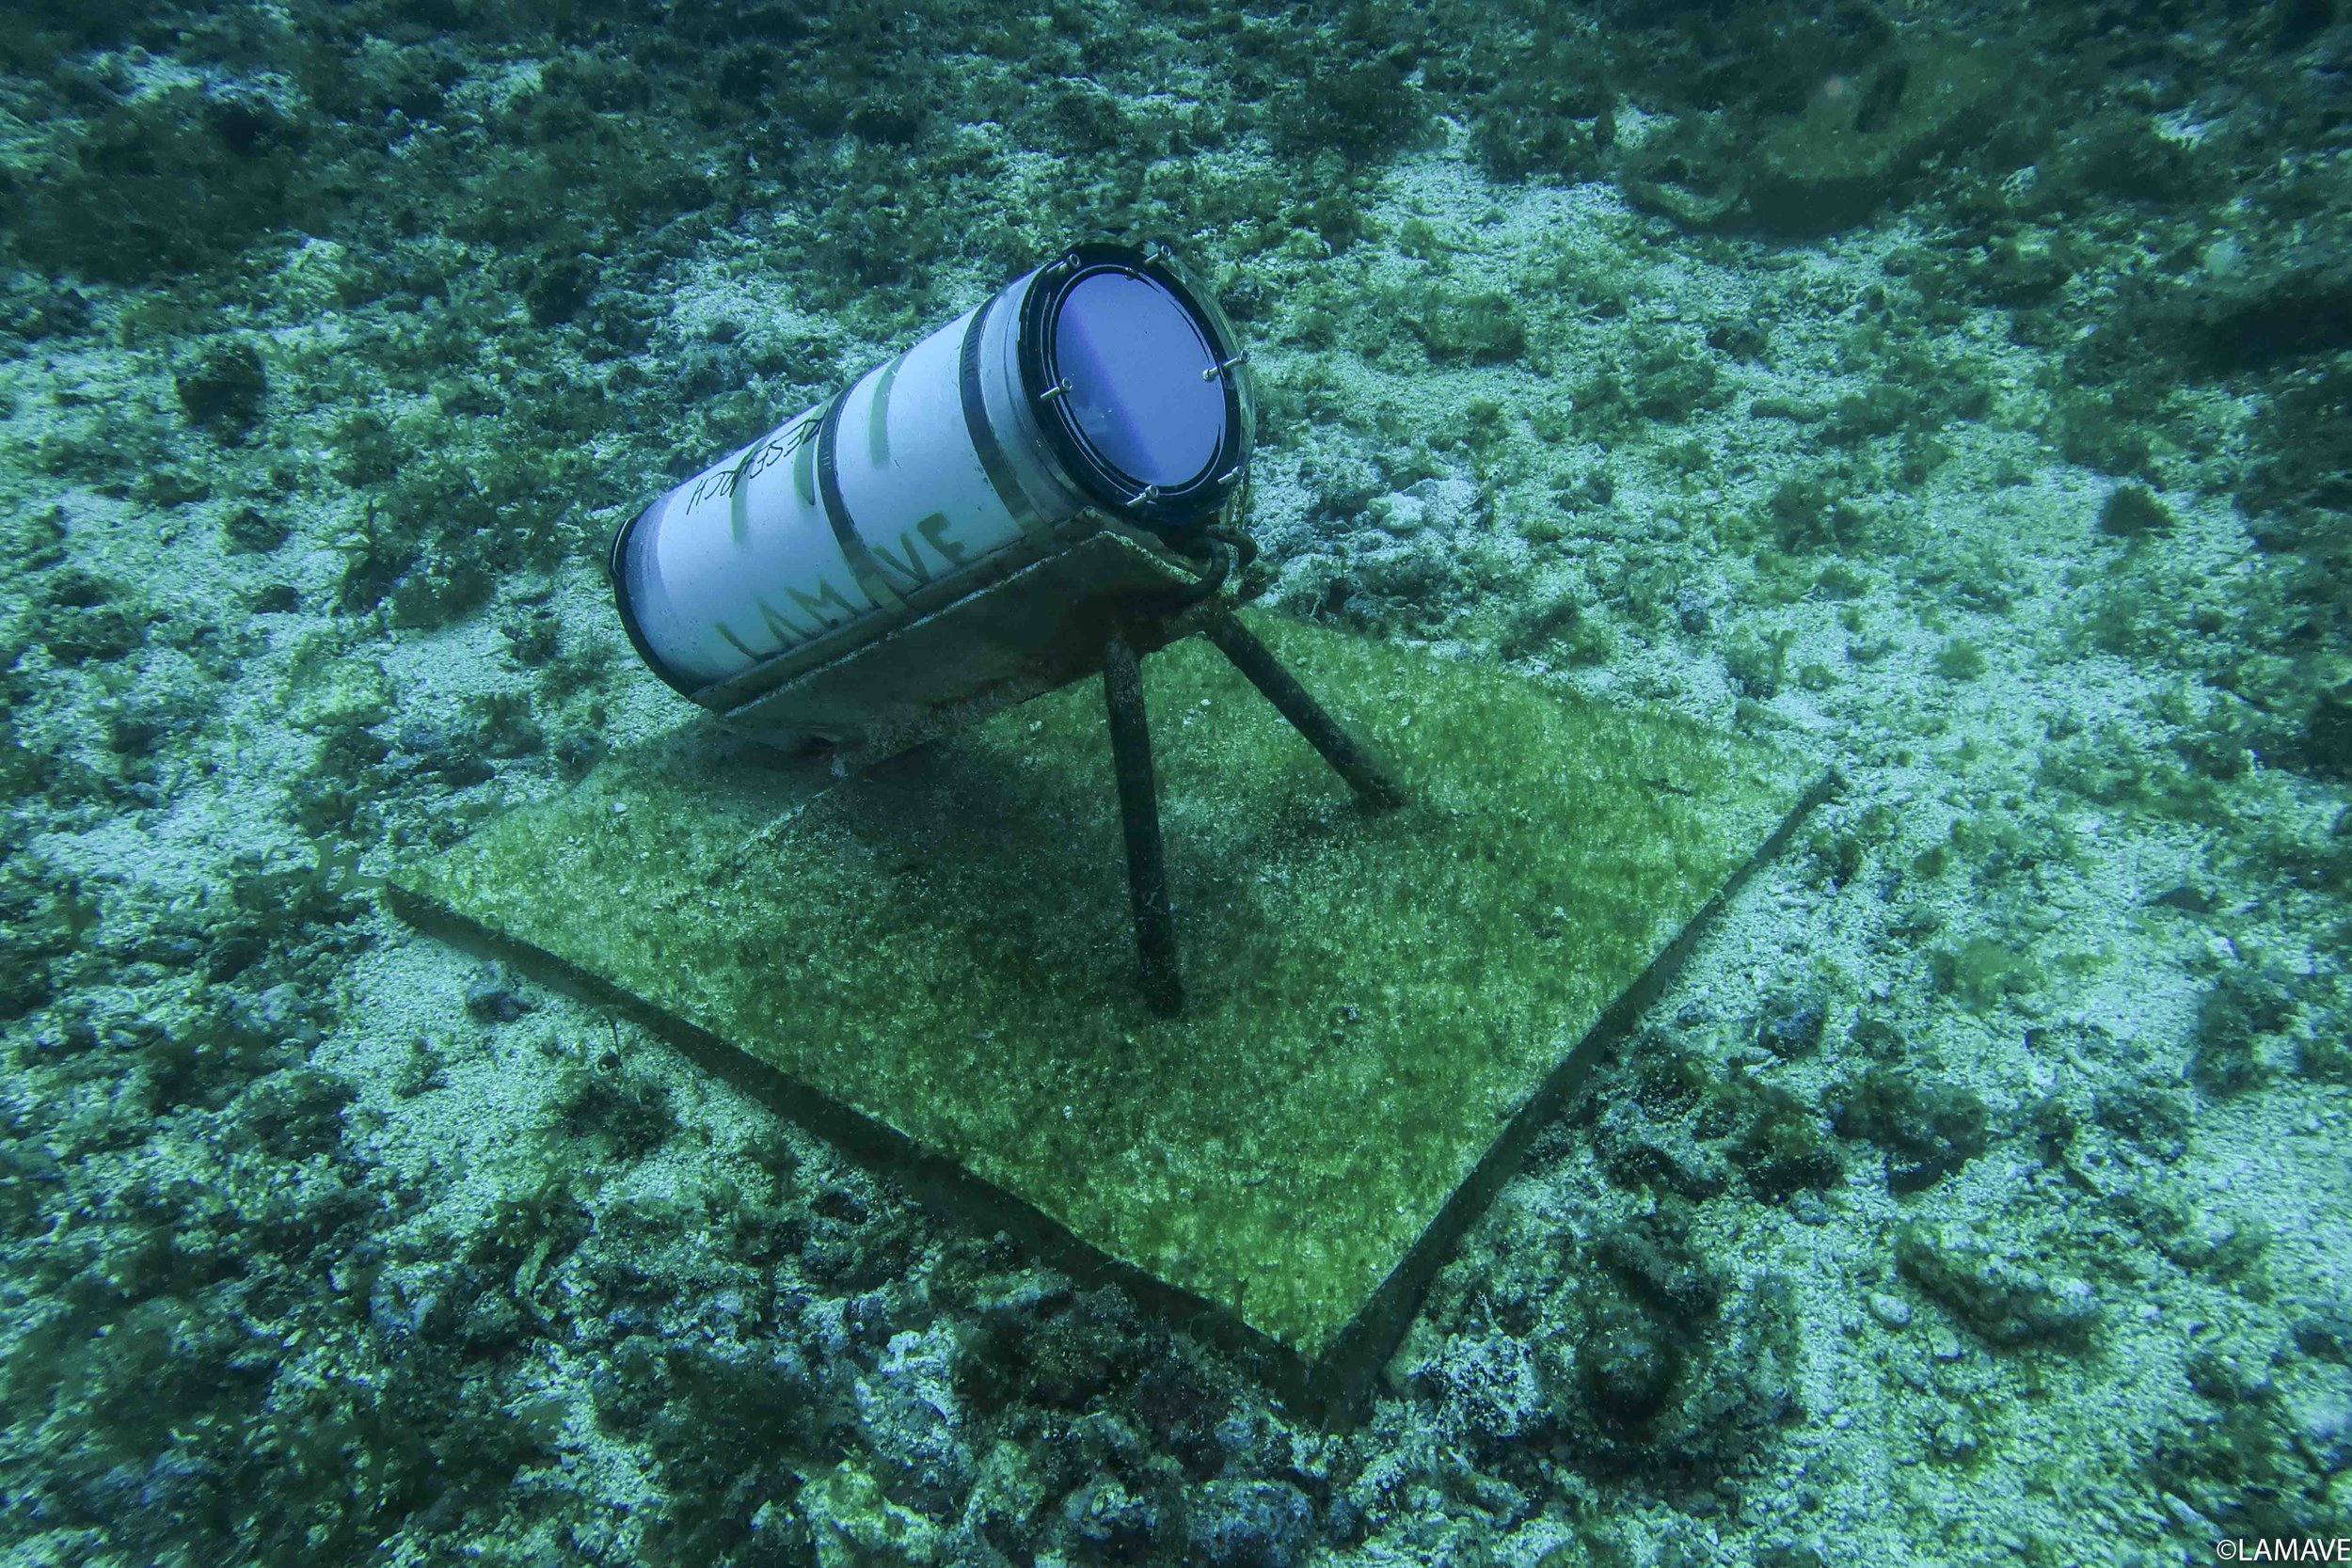 A Remote Underwater Video (RUV) System deployed by the team. The waterproof casing protects a camera and battery pack that allows the team to record a continuous timelapse to capture photographs of mantas and other species visiting the cleaning stations in Manta Bowl.